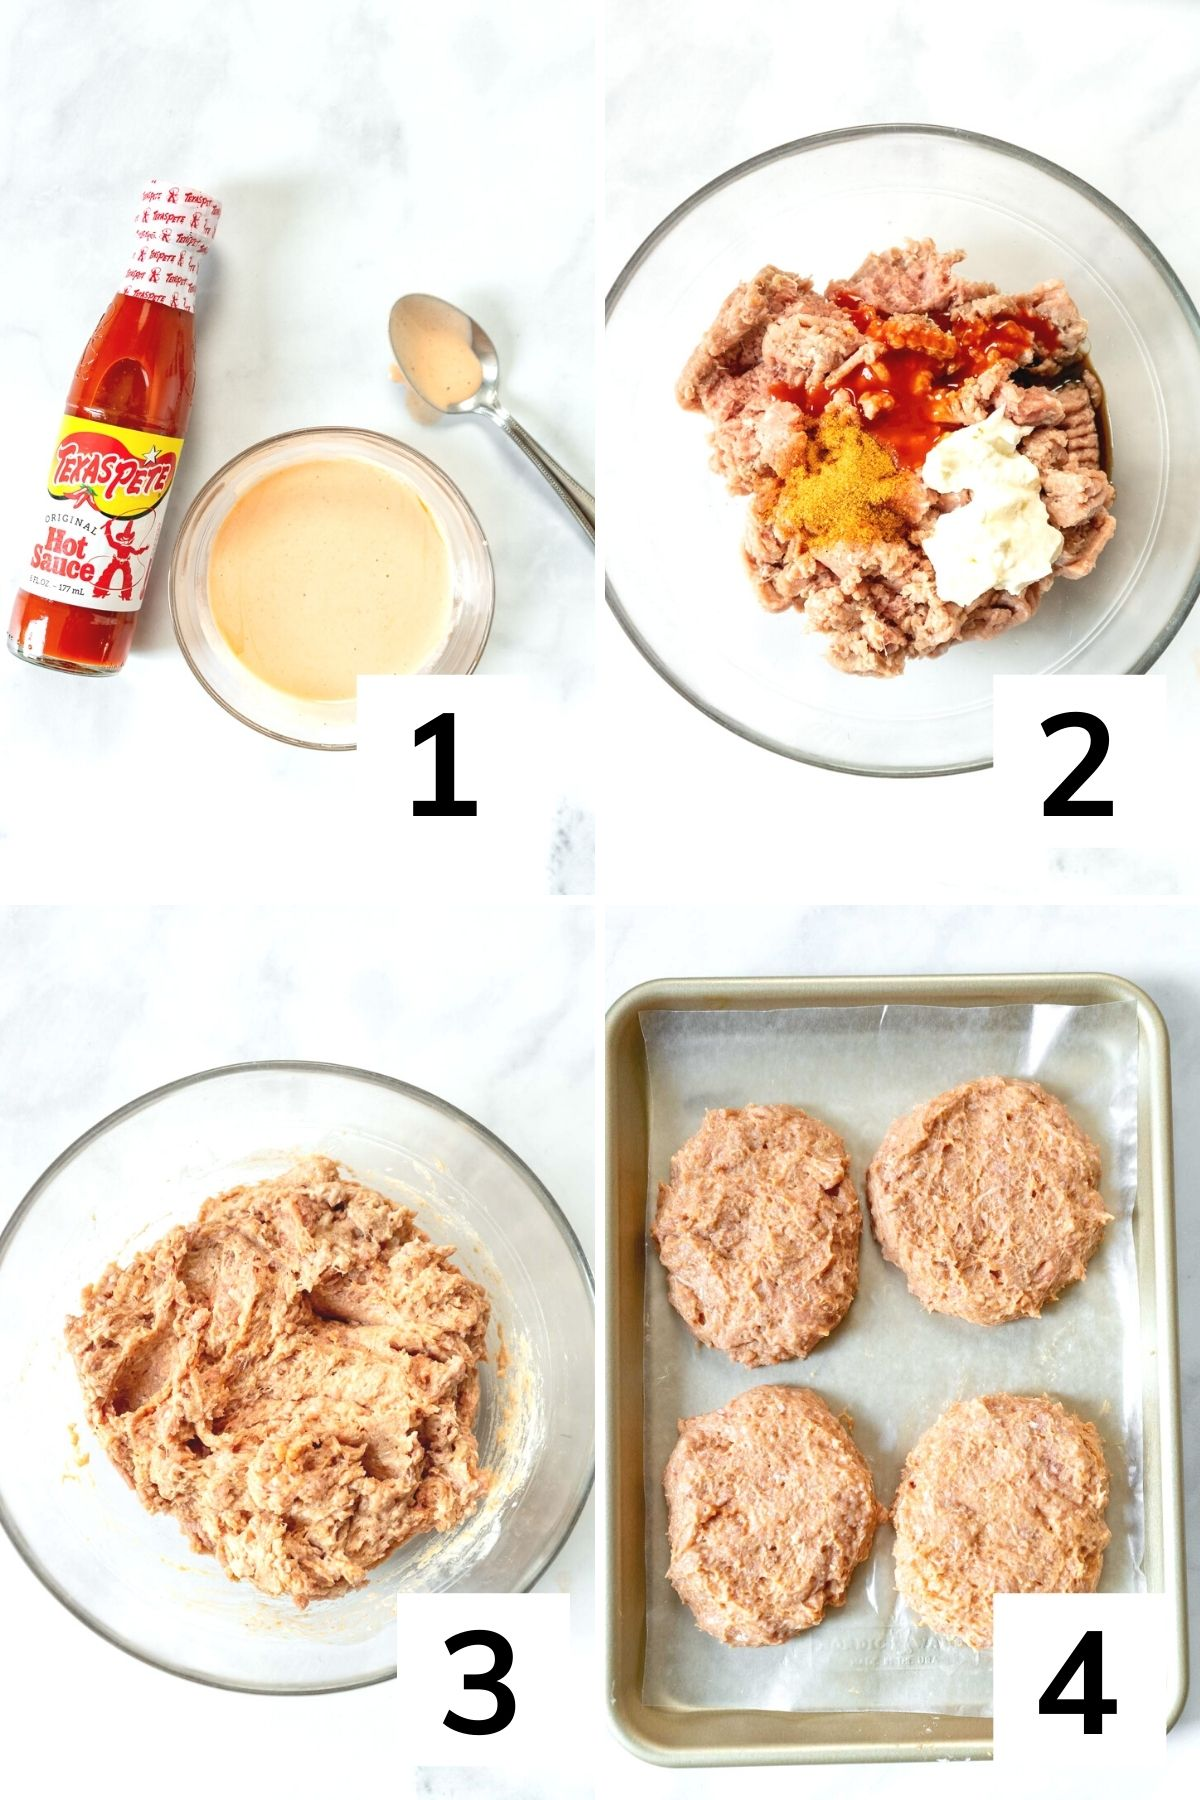 How to make spicy turkey burgers step by step